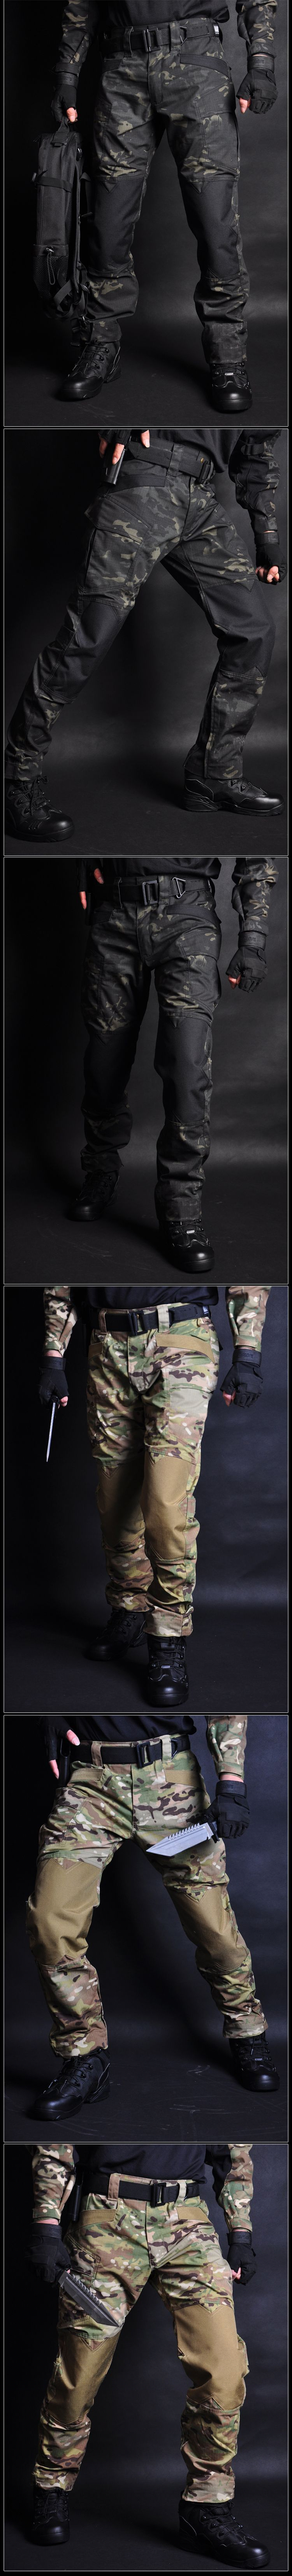 HTB1mueSOrPpK1RjSZFFq6y5PpXat - MEGE Men Jogger Tactical Pants Camouflage Military Cargo Sweatpants Loose Camo Casual Trousers Joggers pantalones tacticos XXXL